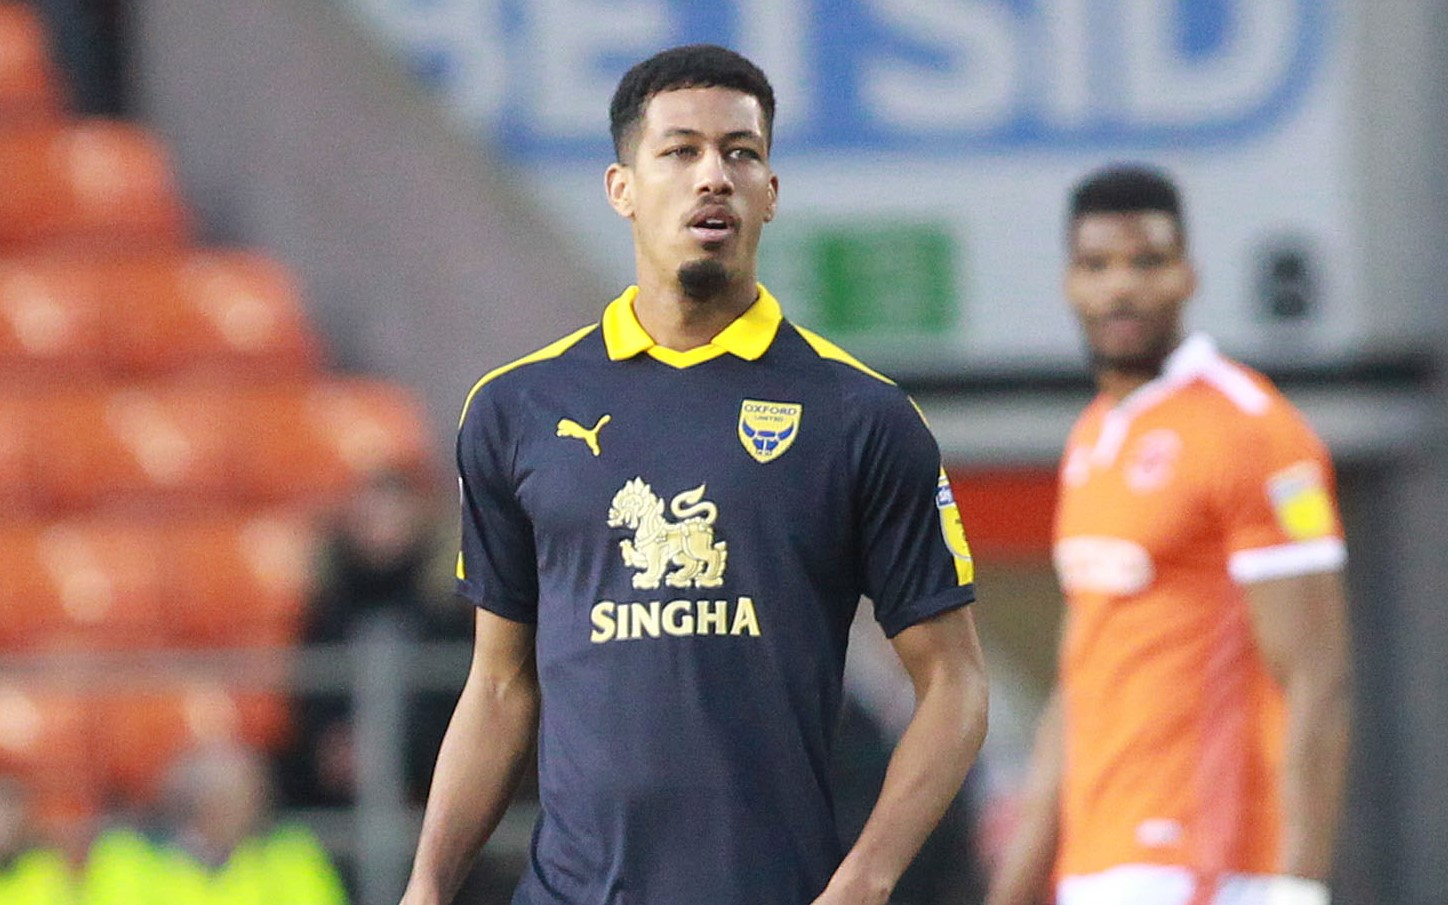 Jonte Smith put Oxford United ahead before Oxford City's fightback   Picture: Richard Parkes